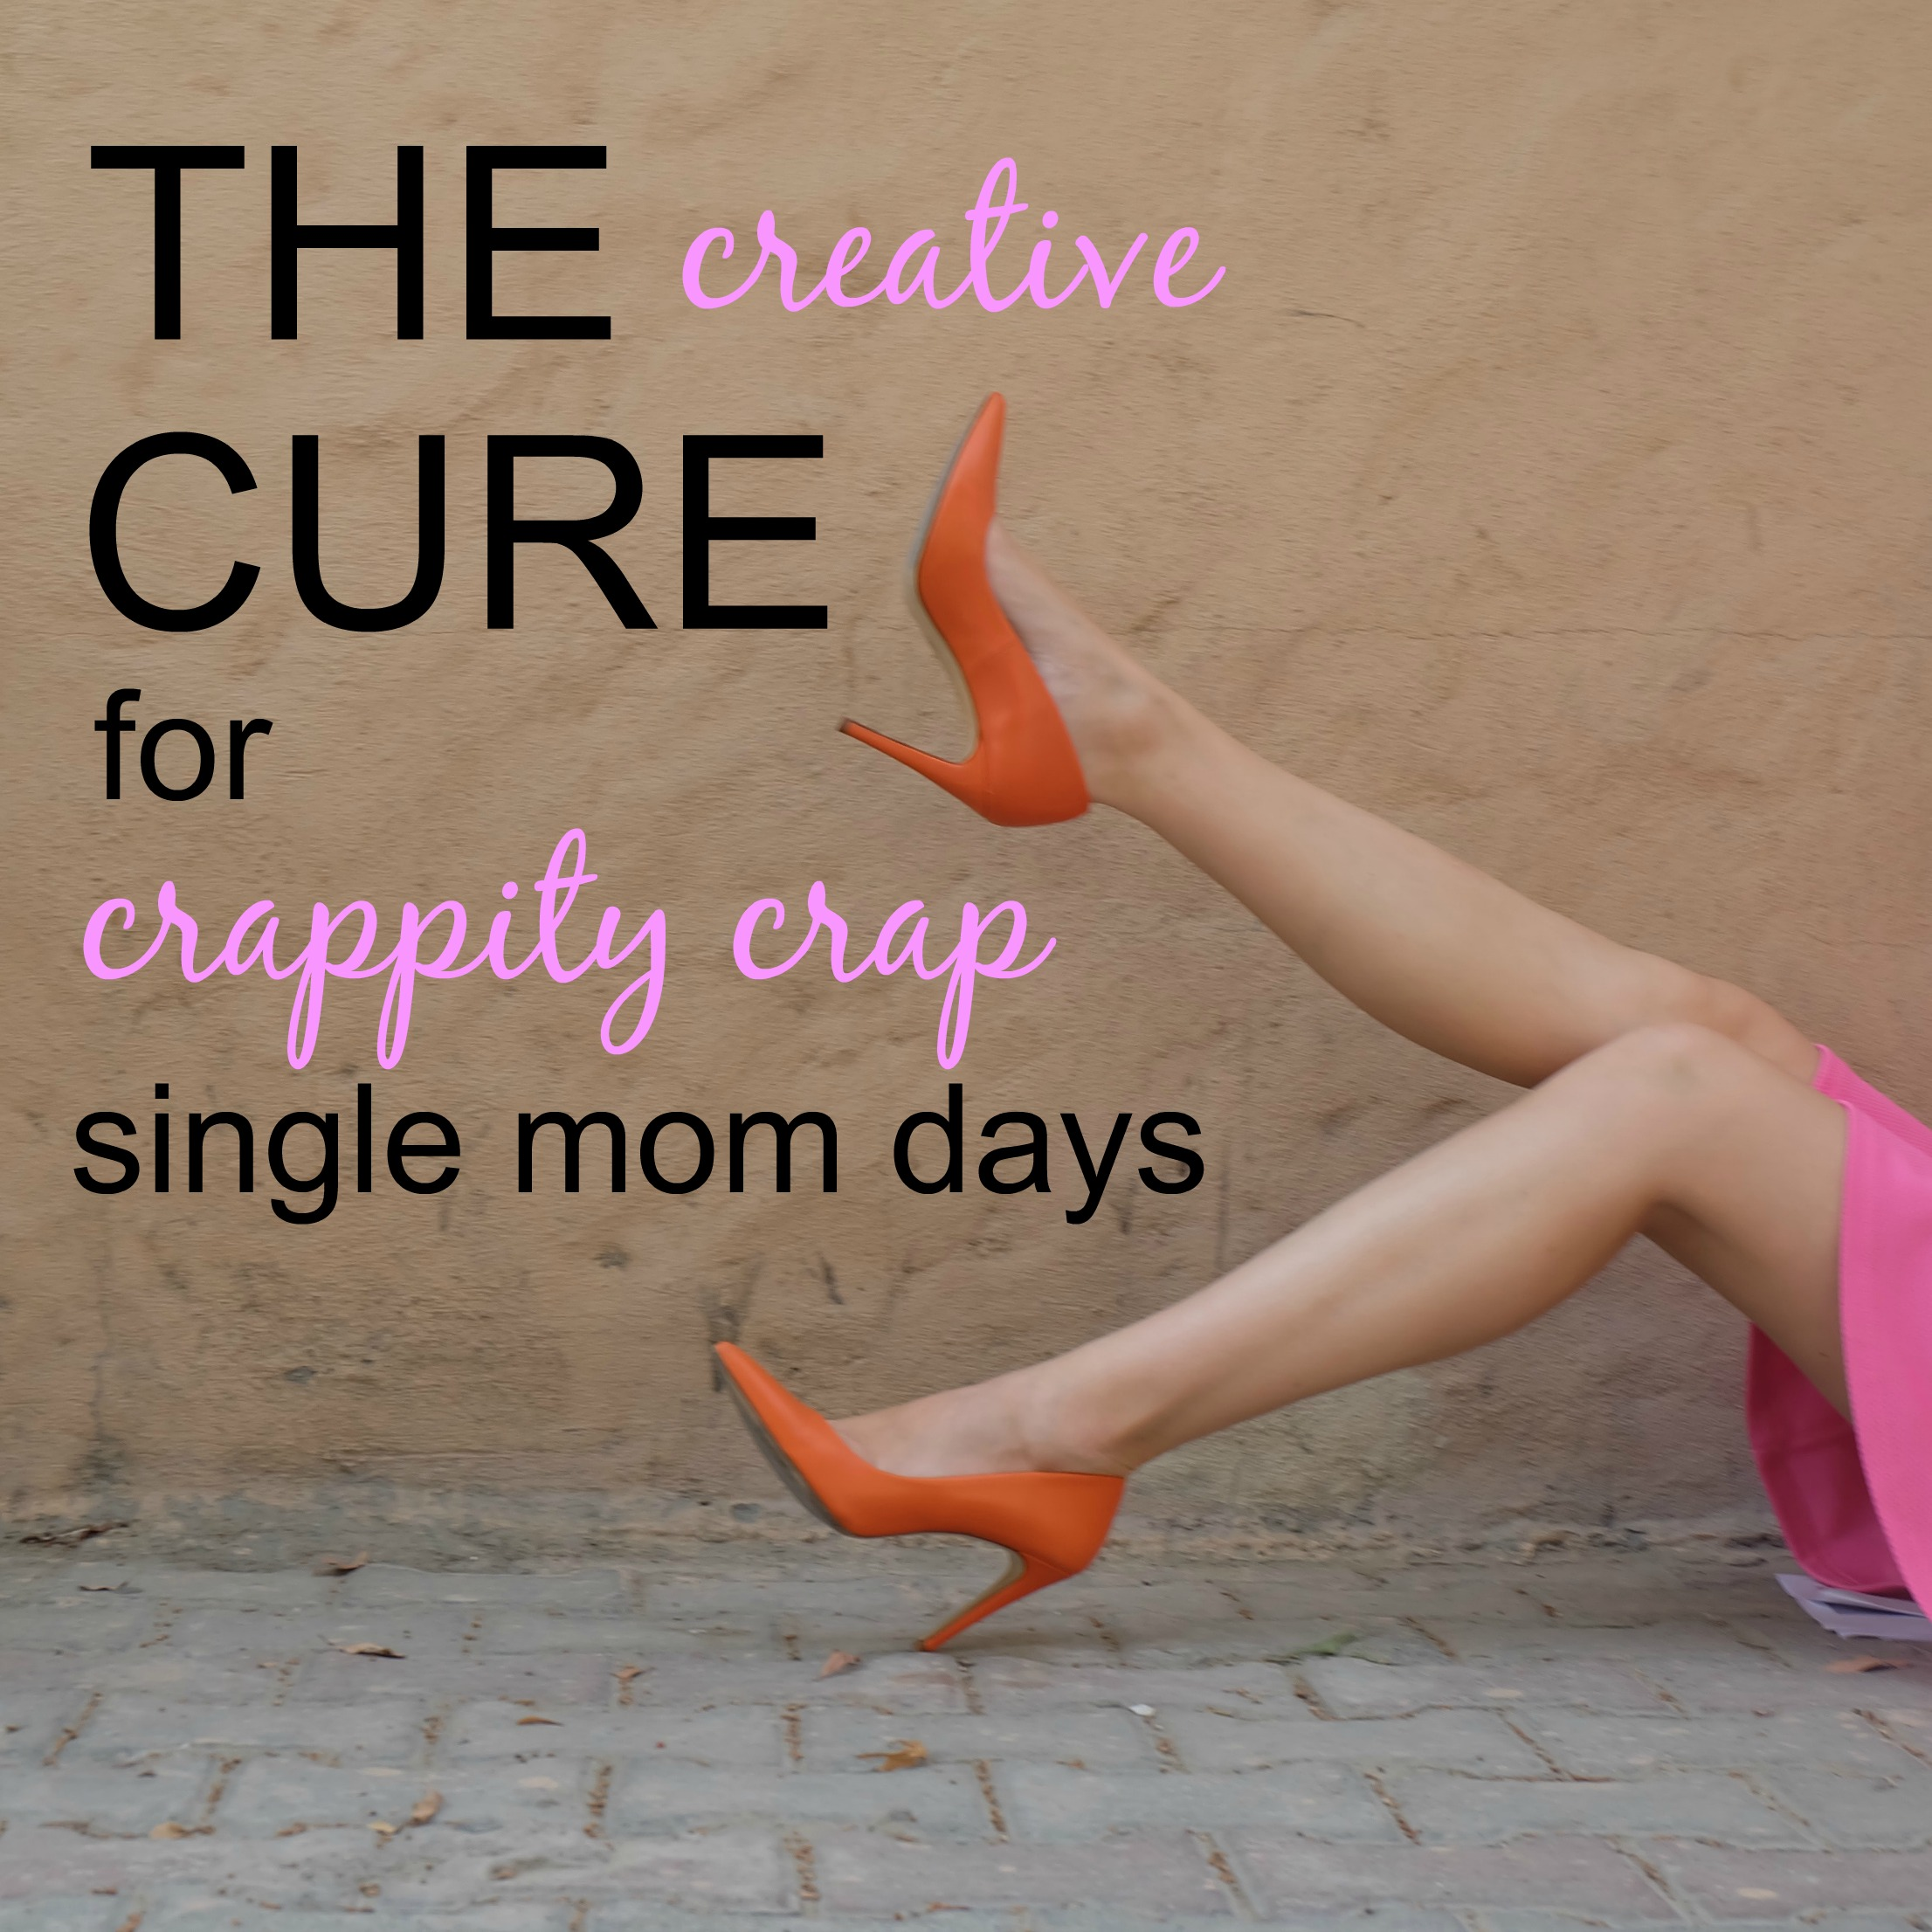 creative cure graphic.jpg